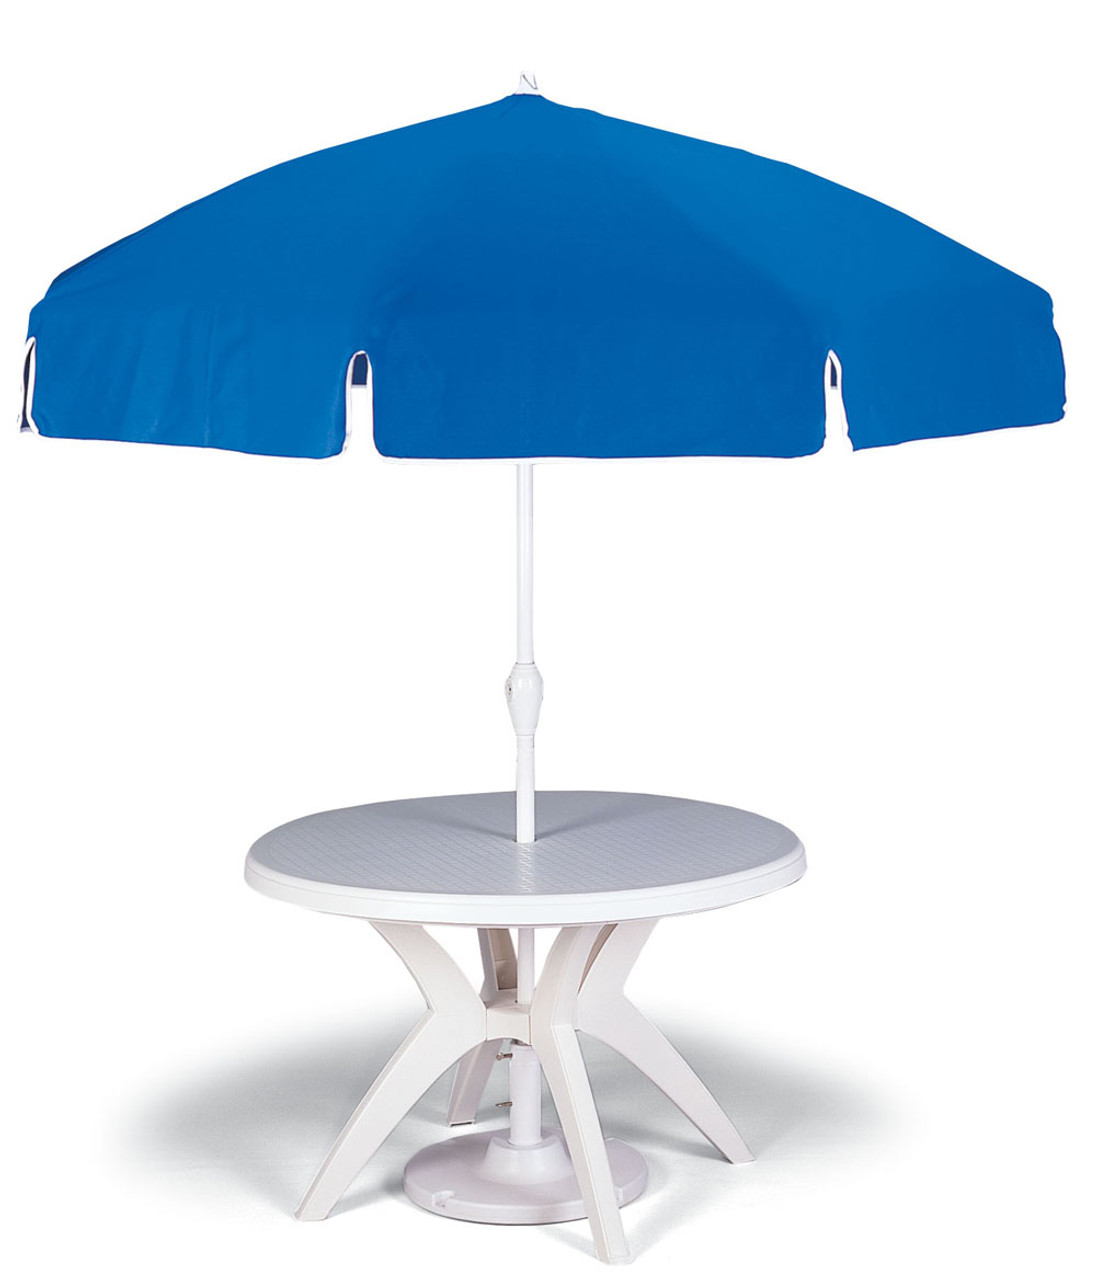 46 round white outdoor resin ibiza restaurant pedestal table with umbrella hole from grosfillex